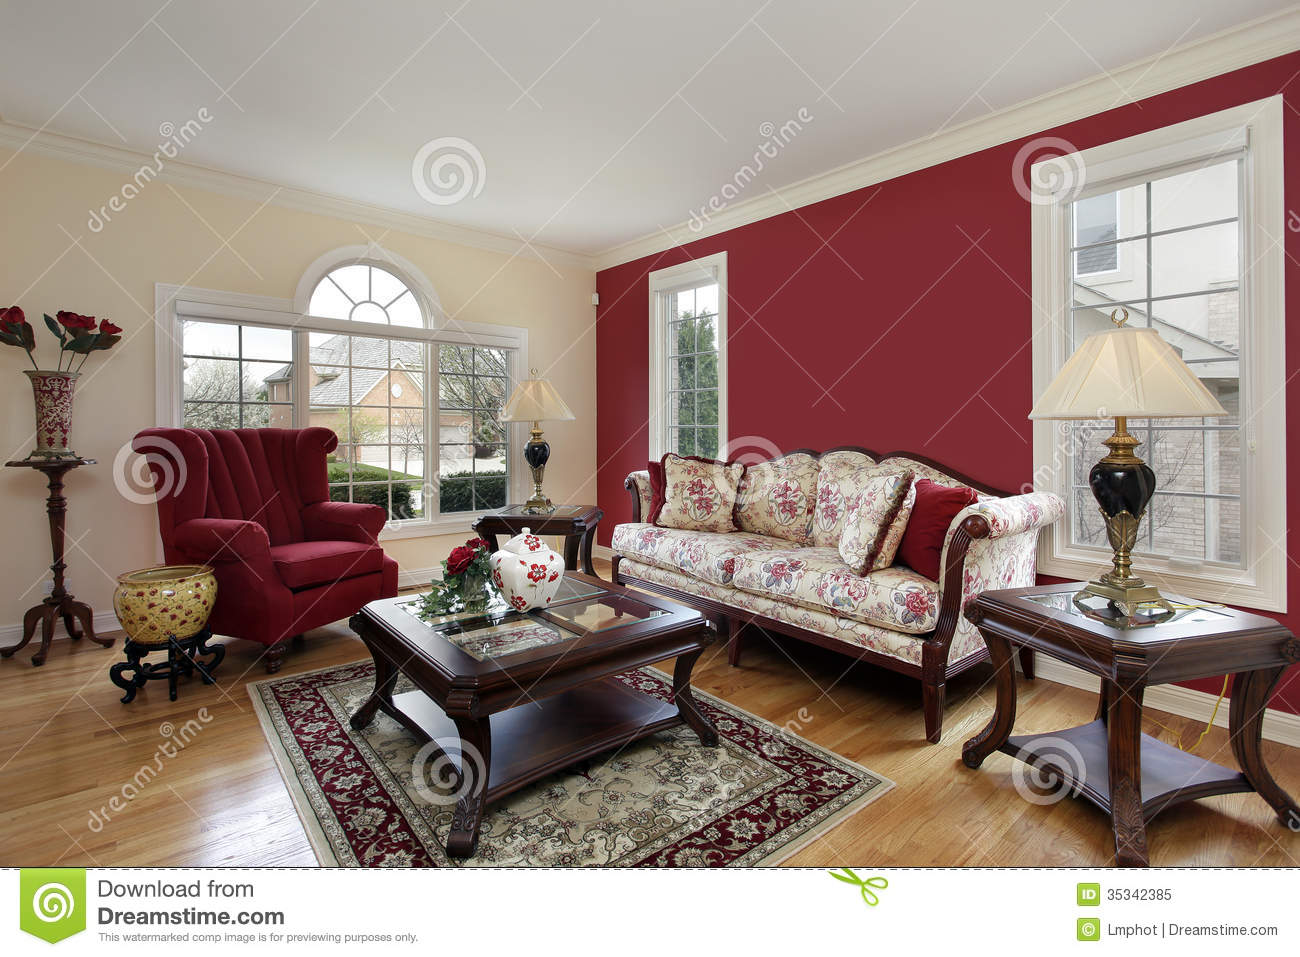 Living Room With Red And Cream Colored Walls Royalty Free Stock Photo Image